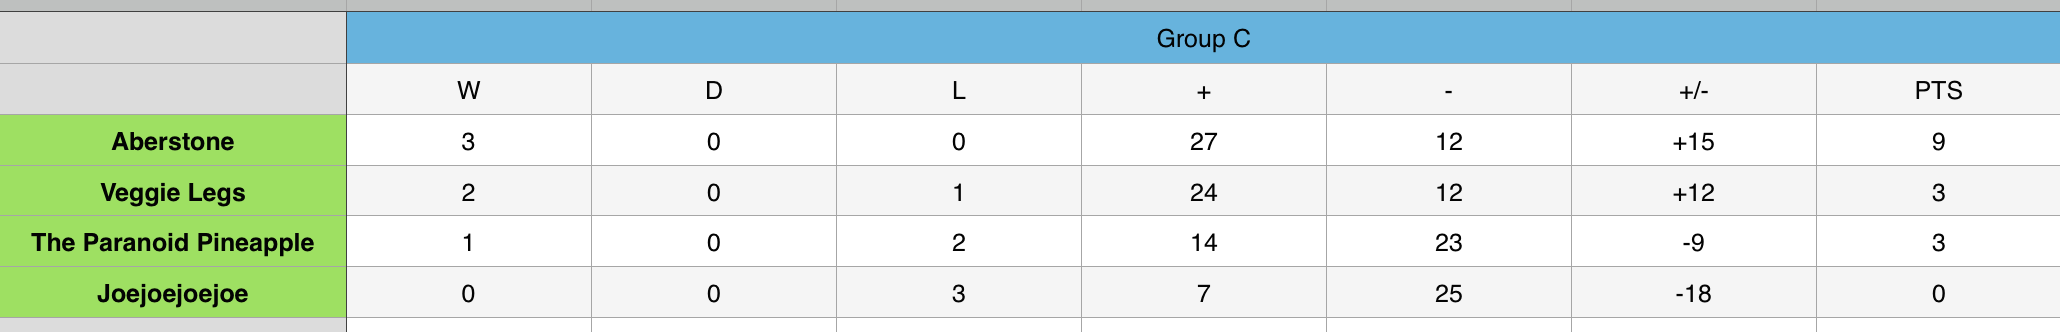 Group C 3.png